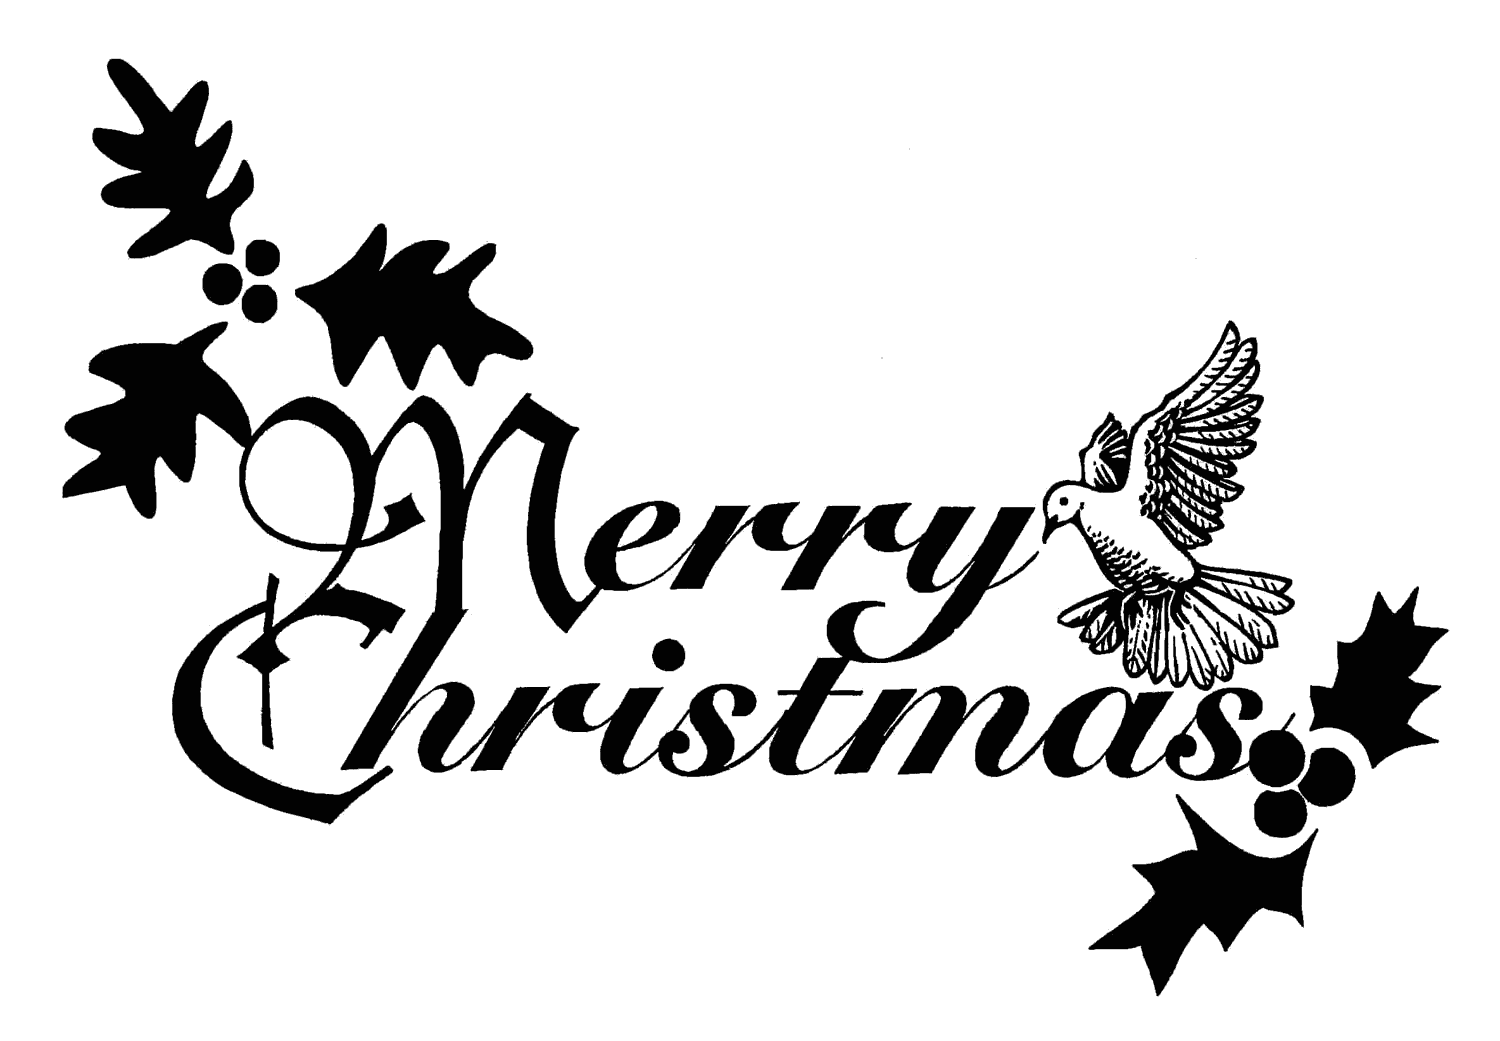 Mickey And Friends Halloween 2 Free further The Grinch That Stole Christmas Printables additionally  likewise Merry Christmas sign BW together with Christmas Gift Coloring Page. on nightmare before christmas birthday party decorations html